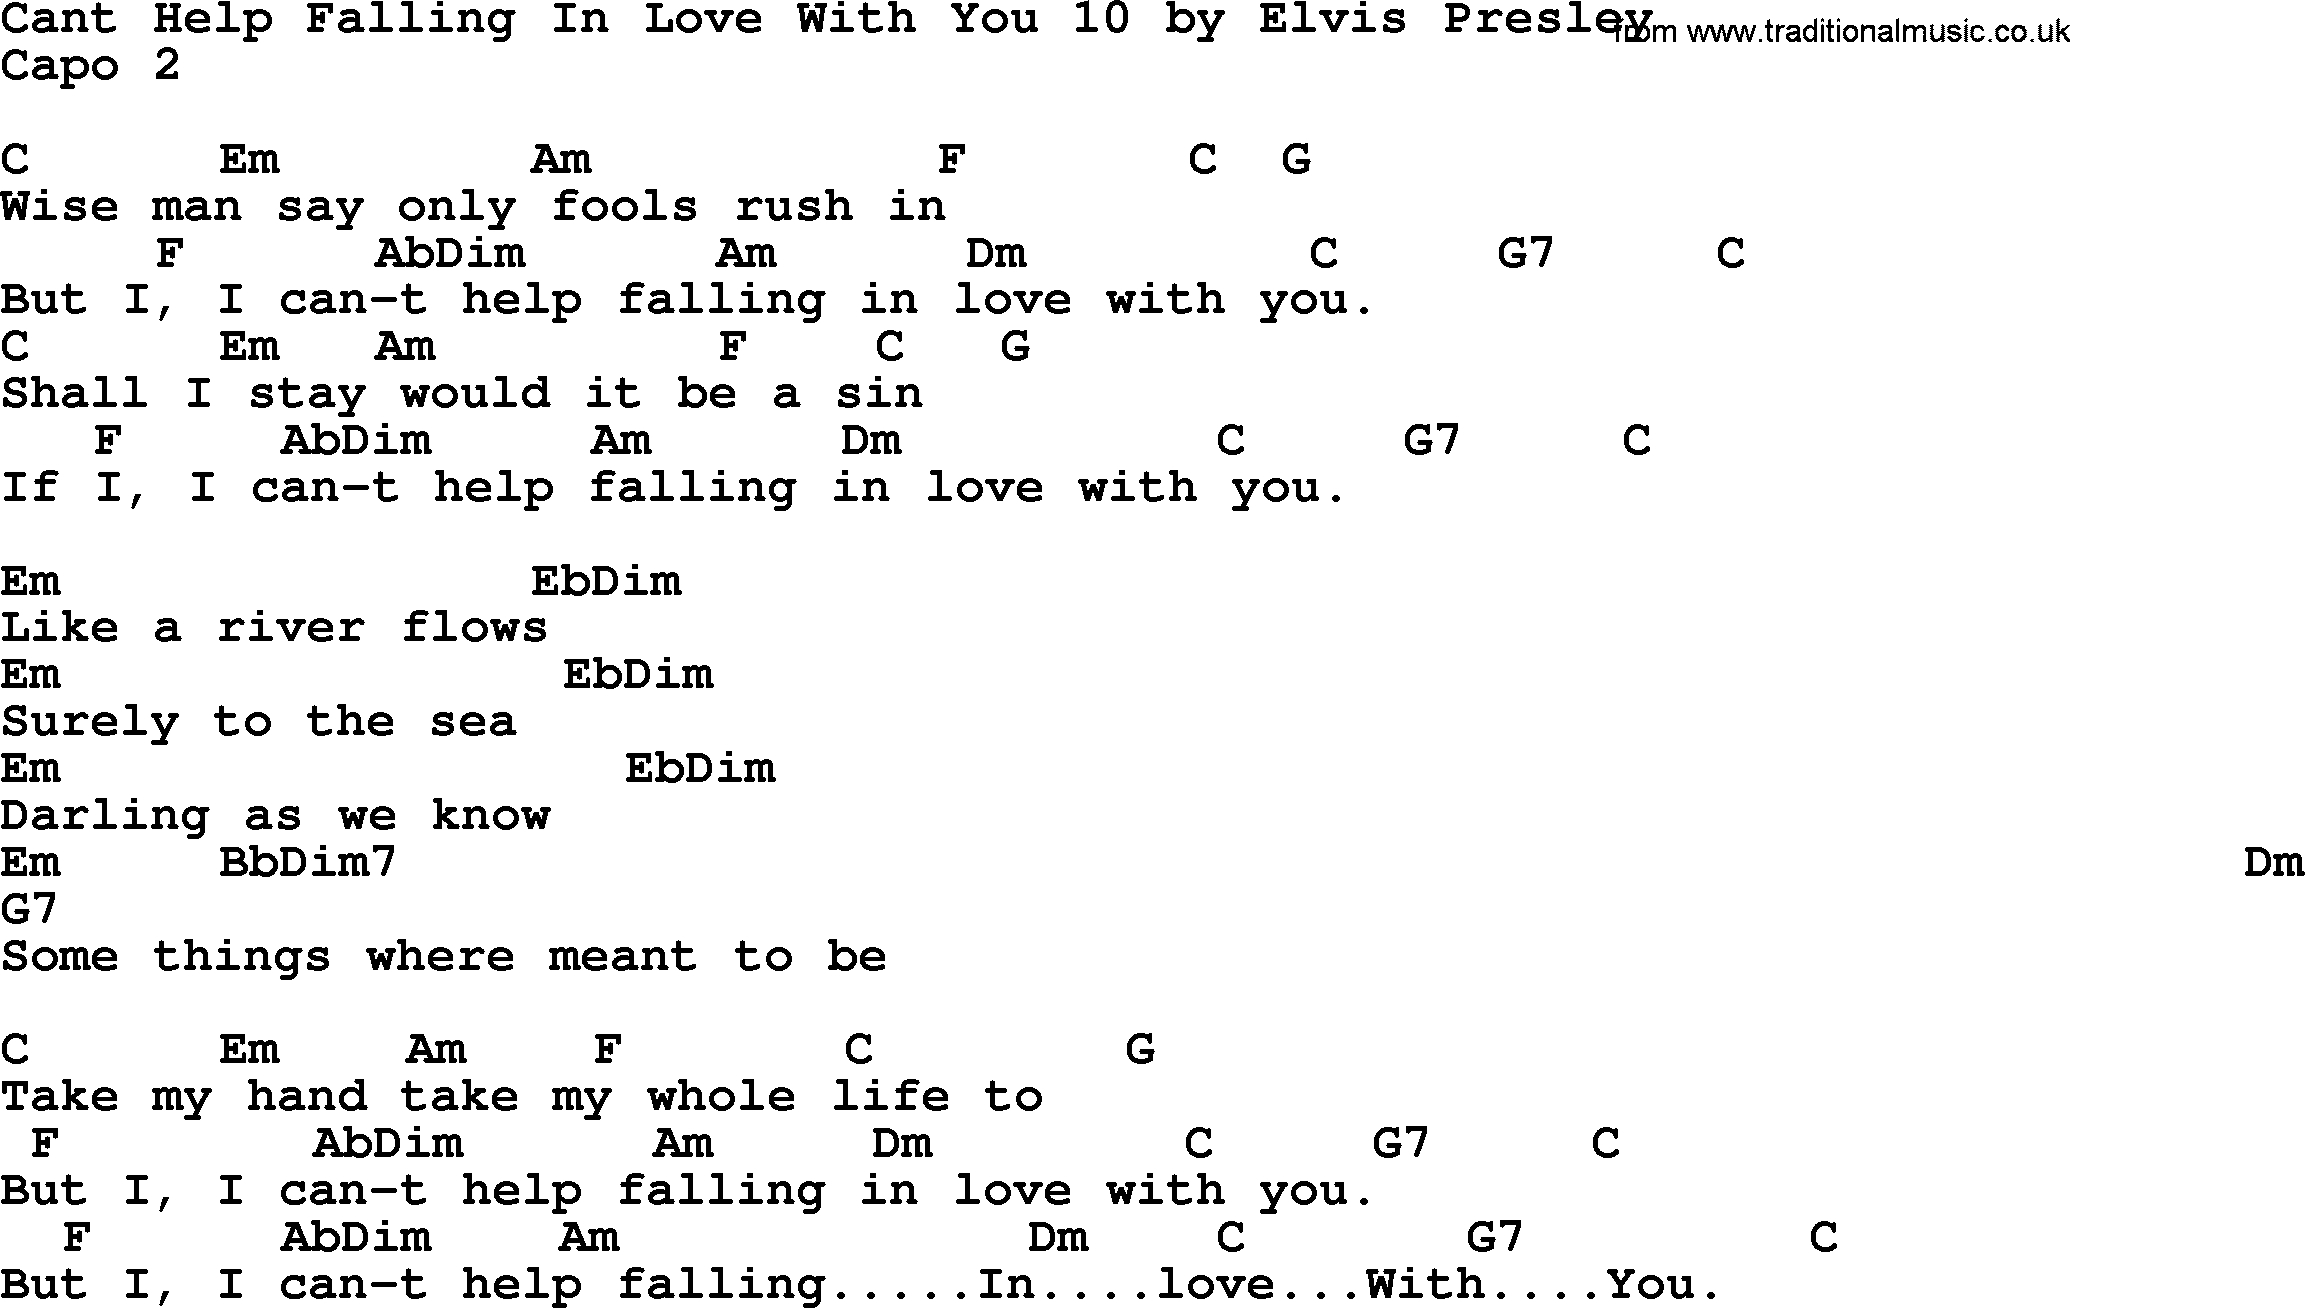 Can T Help Falling In Love Chords Cant Help Falling In Love With You 10 Elvis Presley Lyrics And